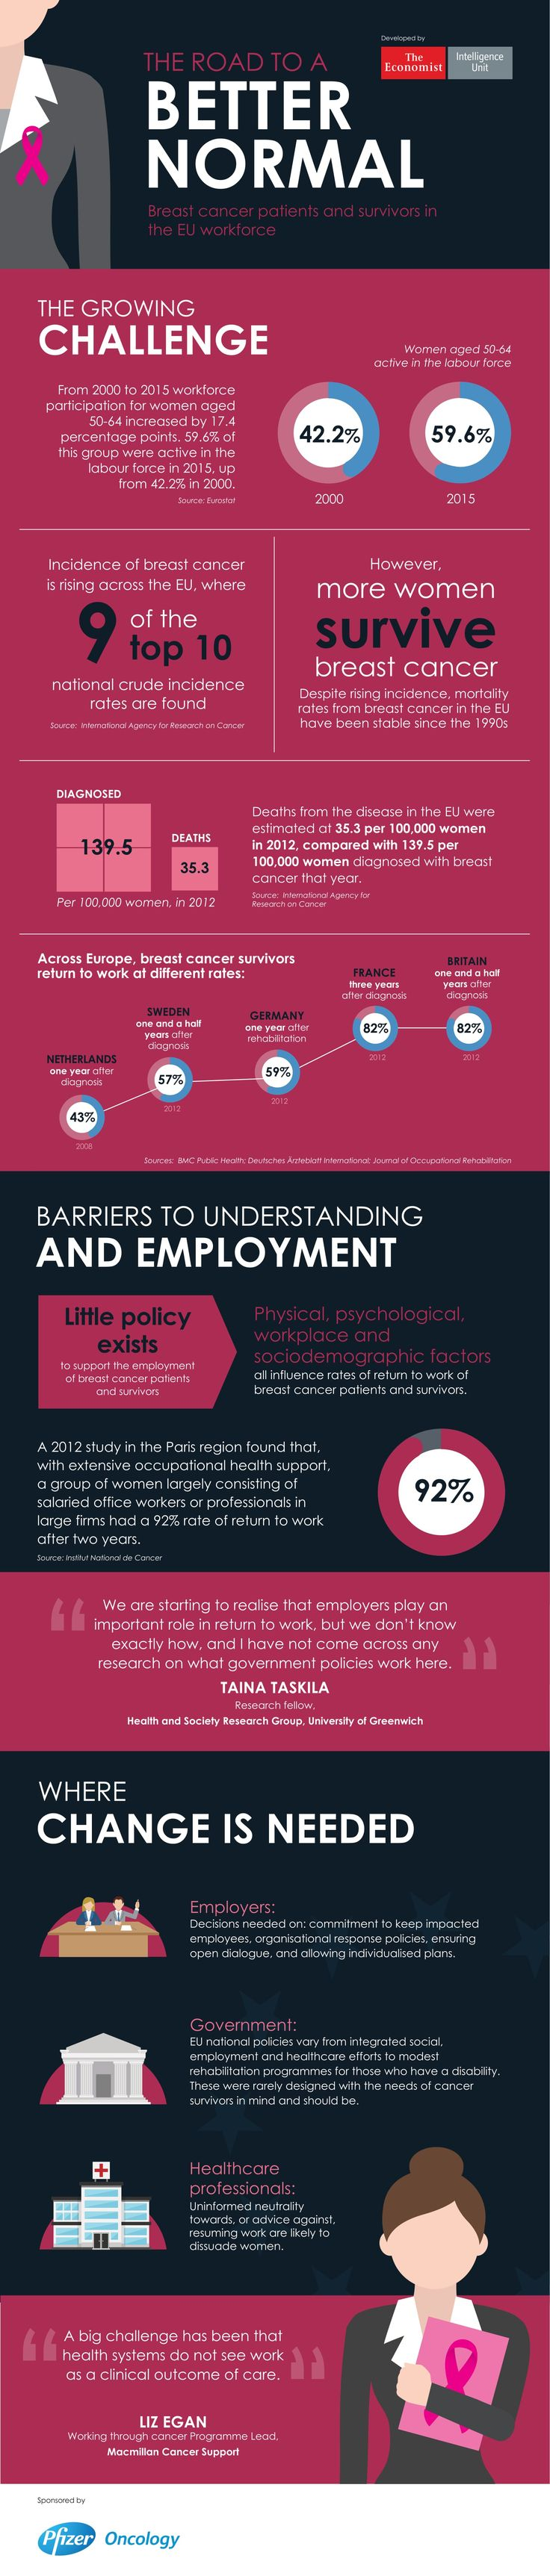 The road to a better normal: Breast Cancer patients and survivors in the EU workforce - The Economist Intelligence Unit (EIU)